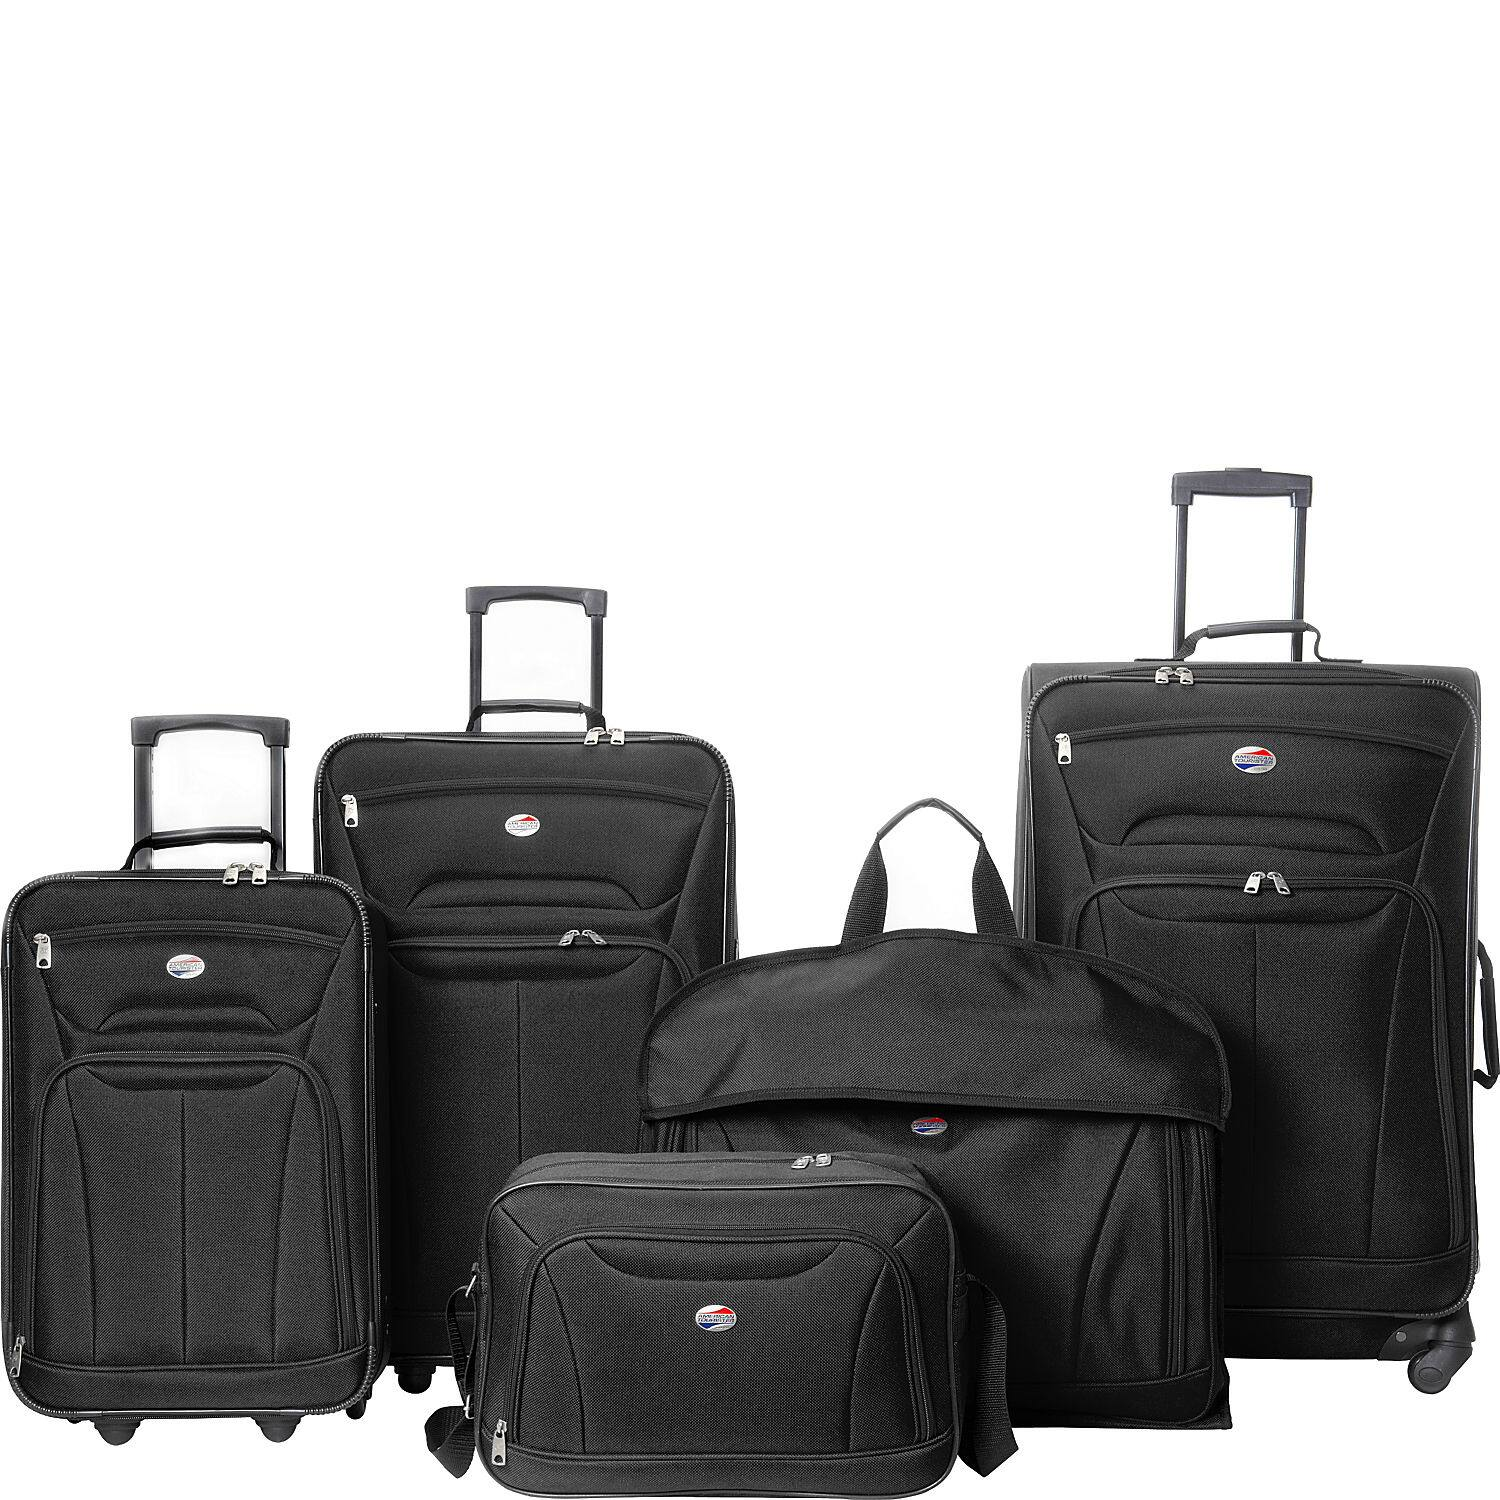 American Tourister Wakefield 5 Piece Luggage Set - eBags Exclusive $99